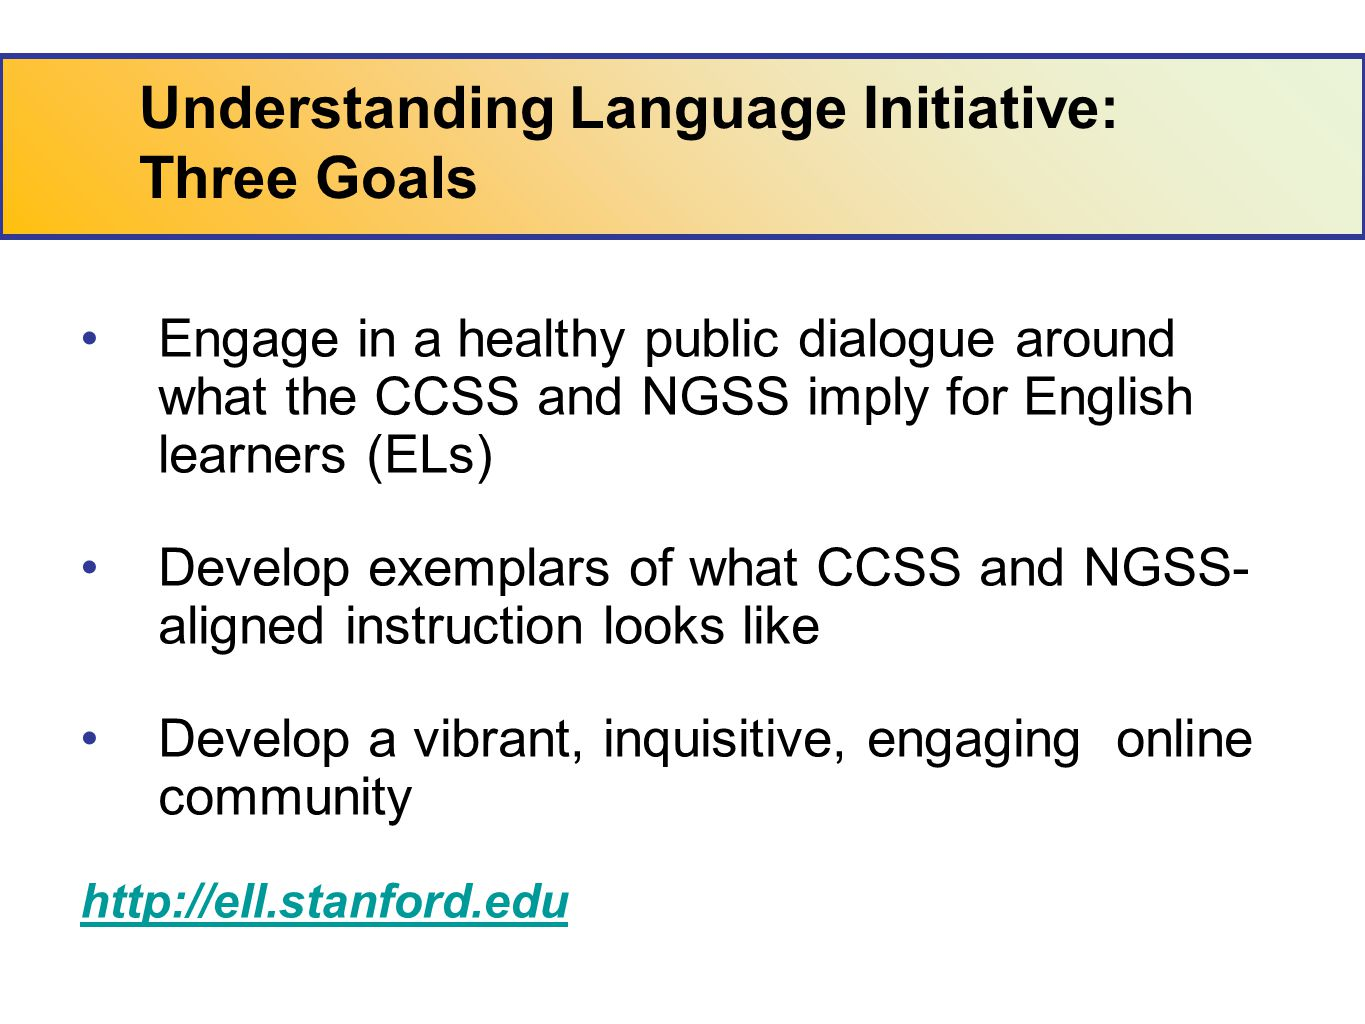 Understanding Language Initiative: Three Goals Engage in a healthy public dialogue around what the CCSS and NGSS imply for English learners (ELs) Develop exemplars of what CCSS and NGSS- aligned instruction looks like Develop a vibrant, inquisitive, engaging online community http://ell.stanford.edu